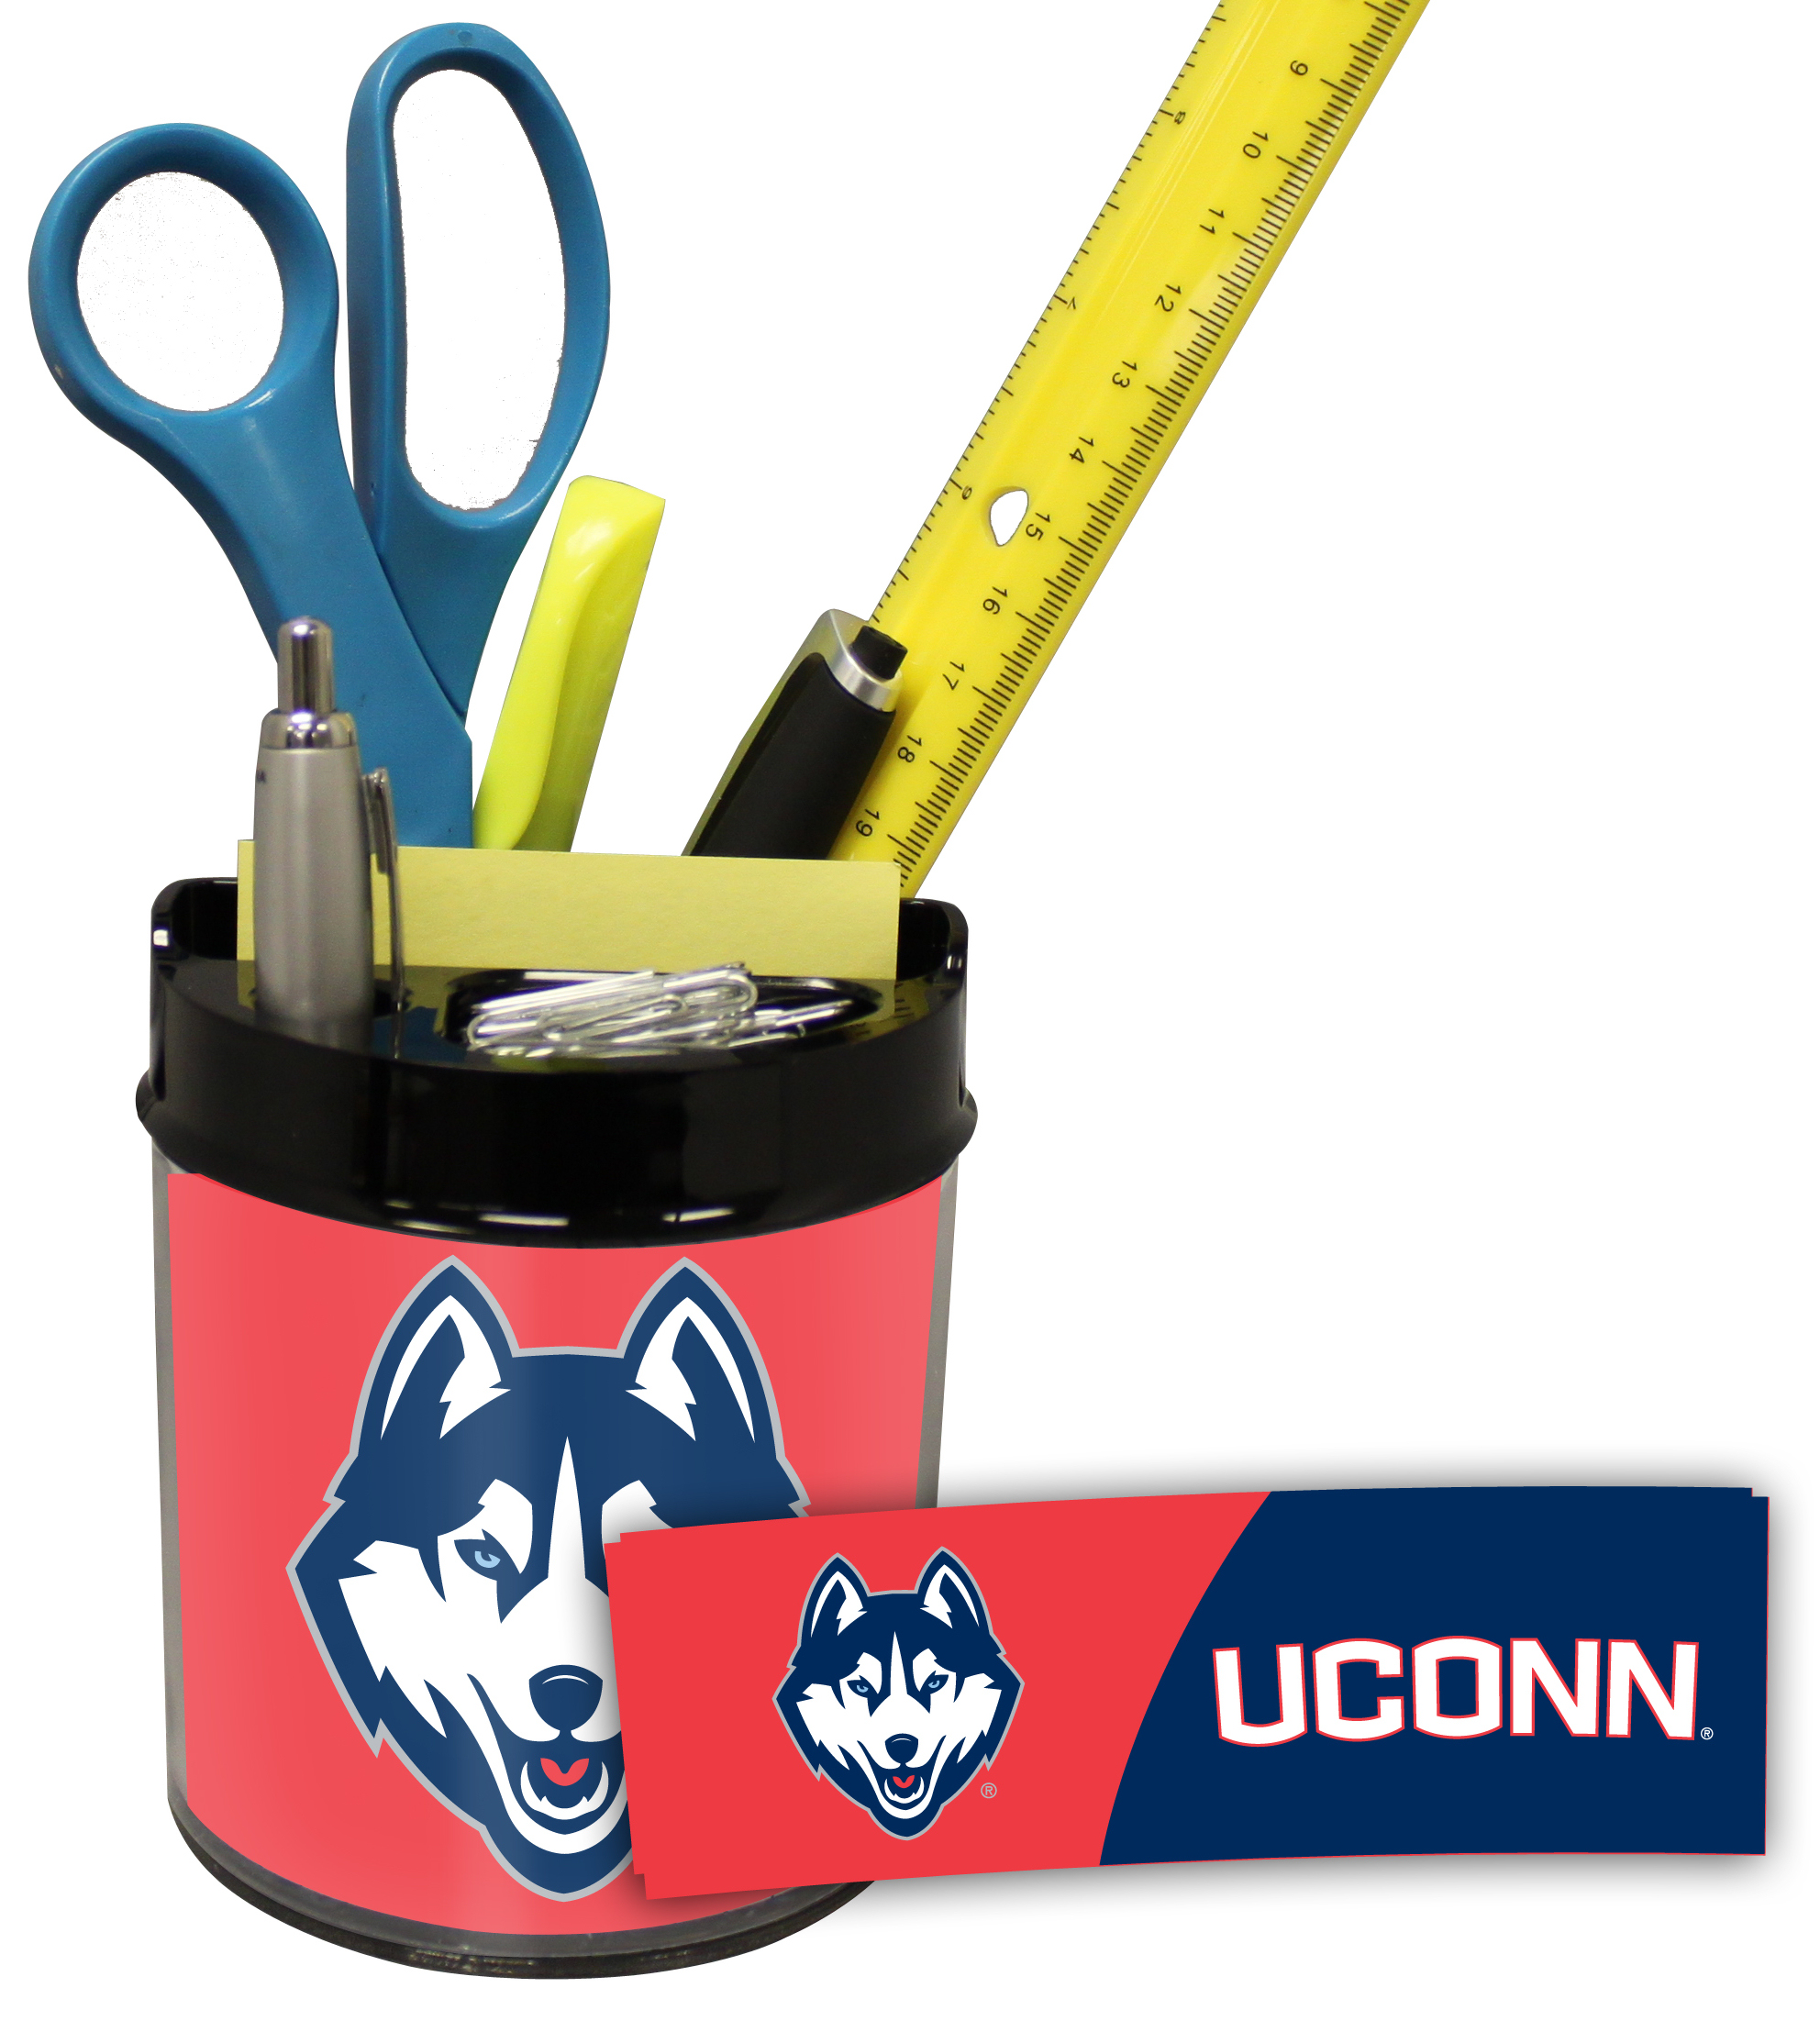 Connecticut Huskies Small Desk Caddy